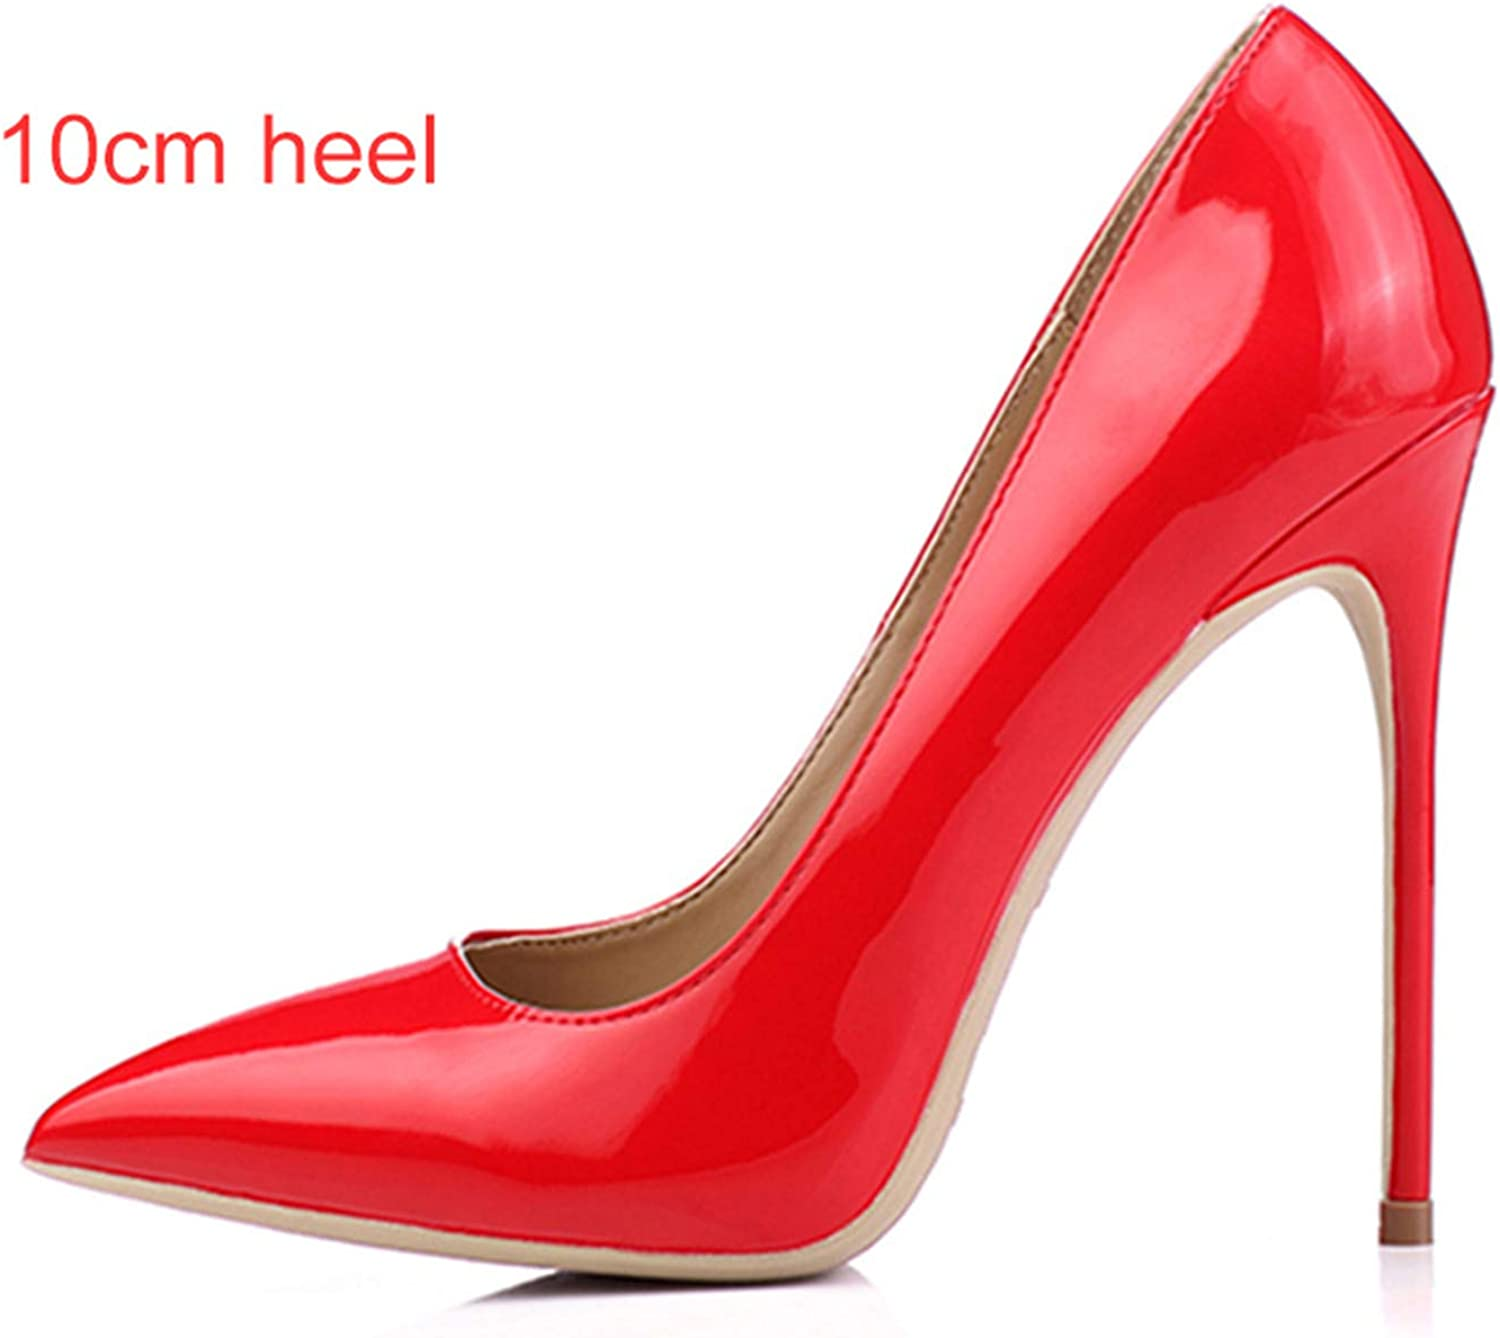 Micca Bacain Women shoes 8cm 10cm 12cm High Heels Pumps Sexy Ladies shoes Pointed Toe Classic Wedding shoes